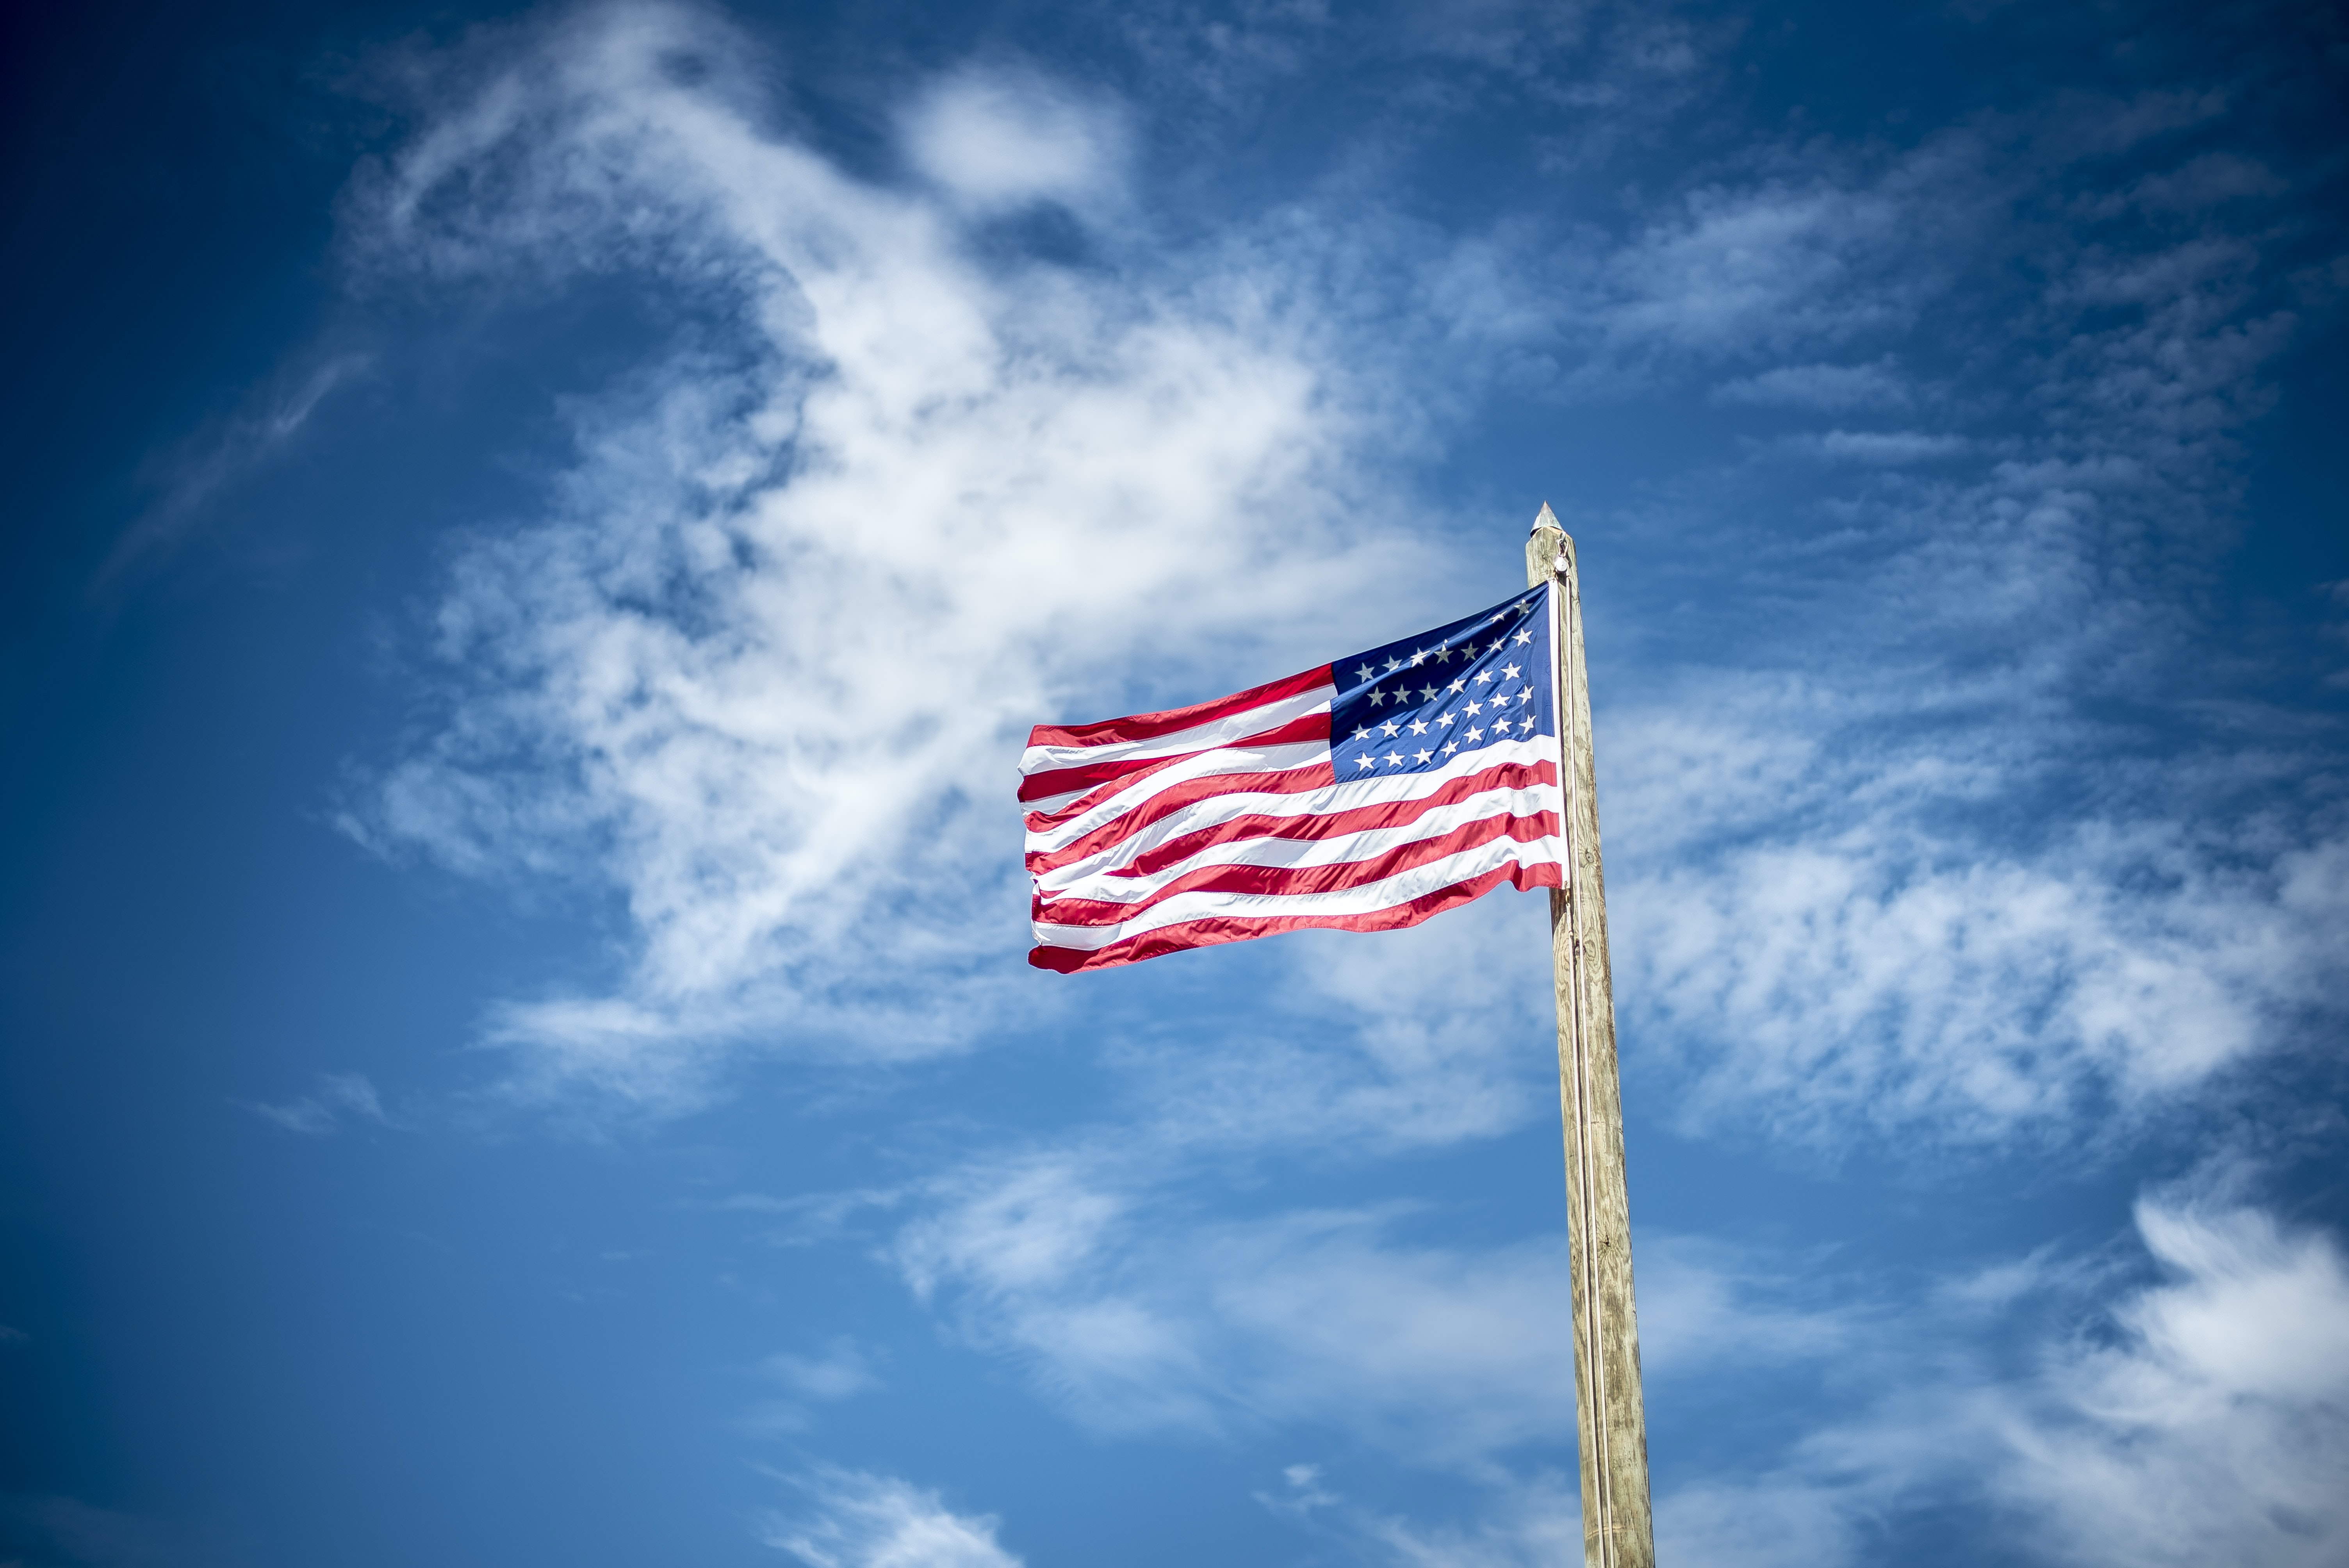 An American flag flying on a log pole against a blue sky with wispy clouds